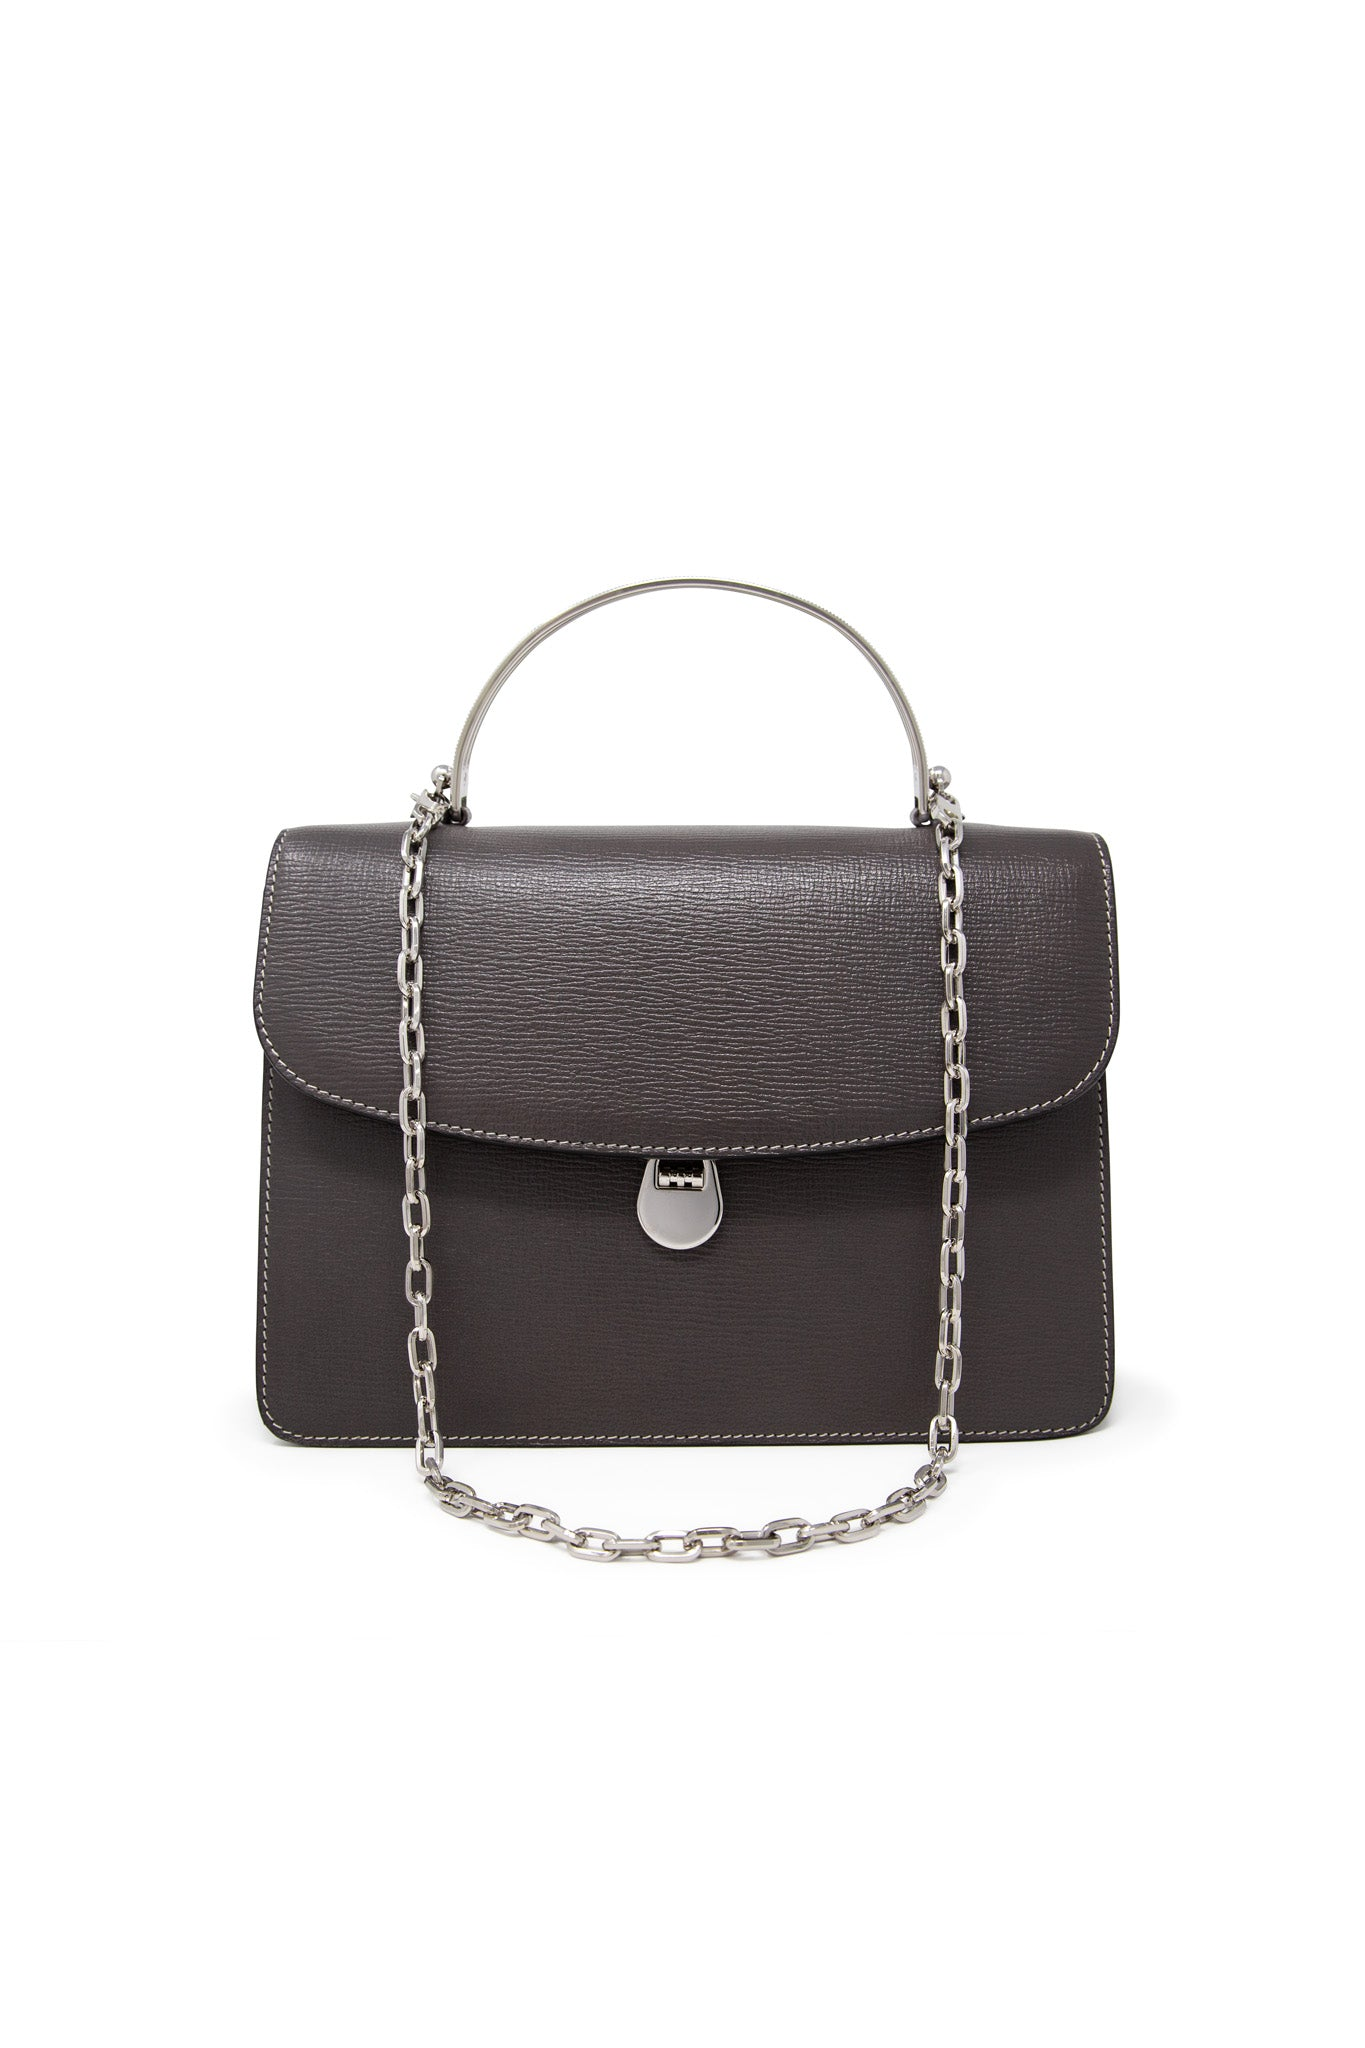 Charlie Top Handle Bag in Shadow Leather